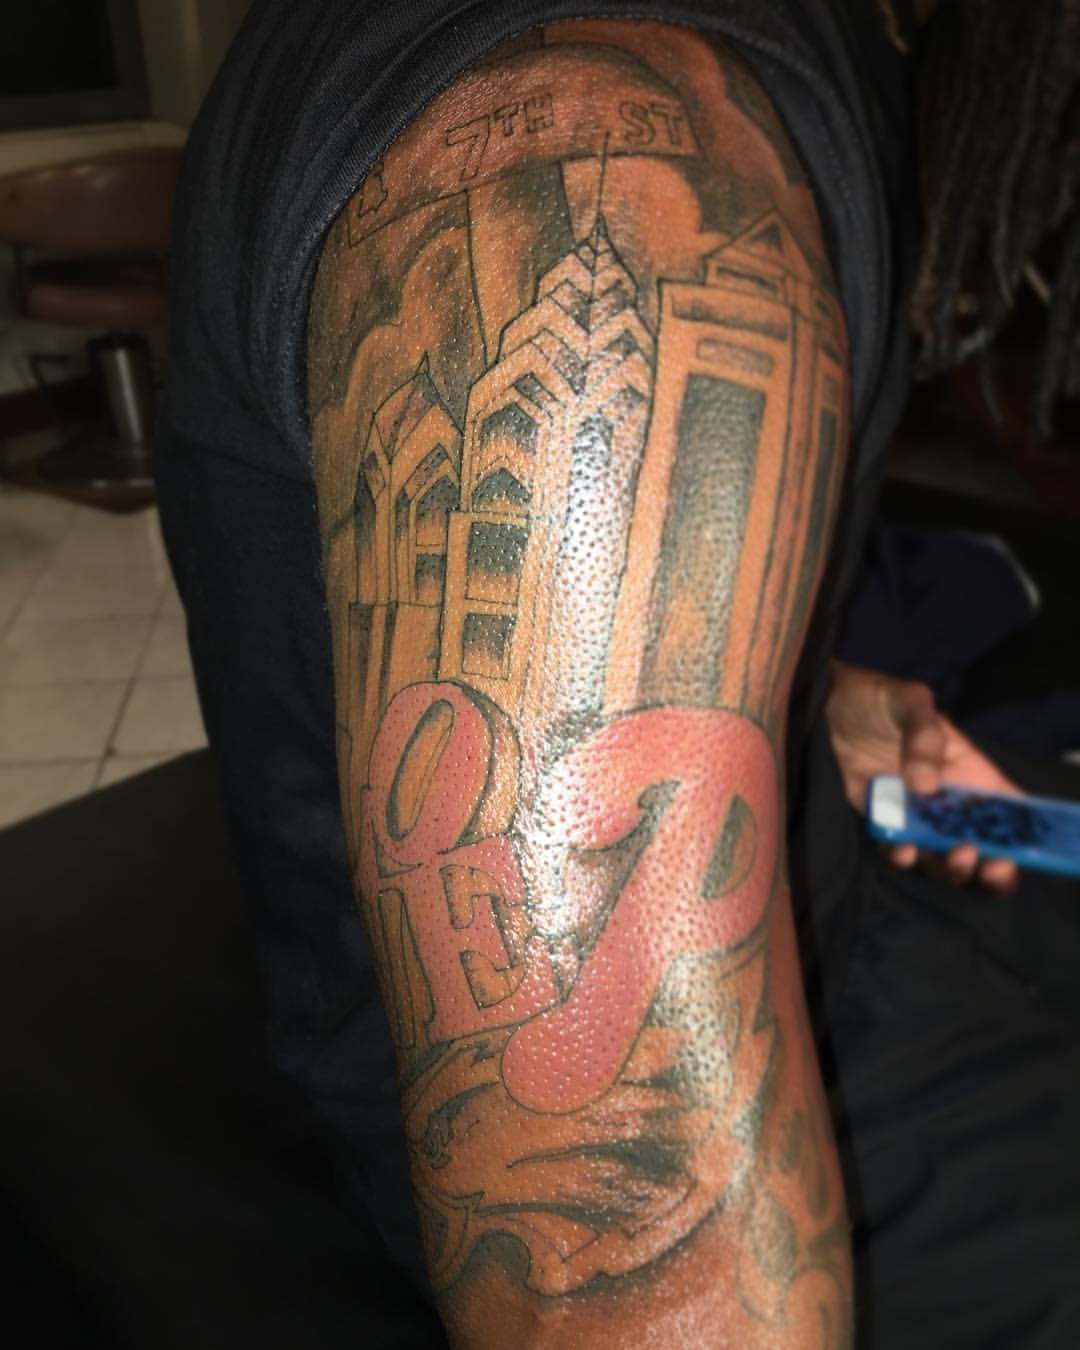 Philly Theme Half Sleeve Tattoo I Did Yesterday ! It's A ...